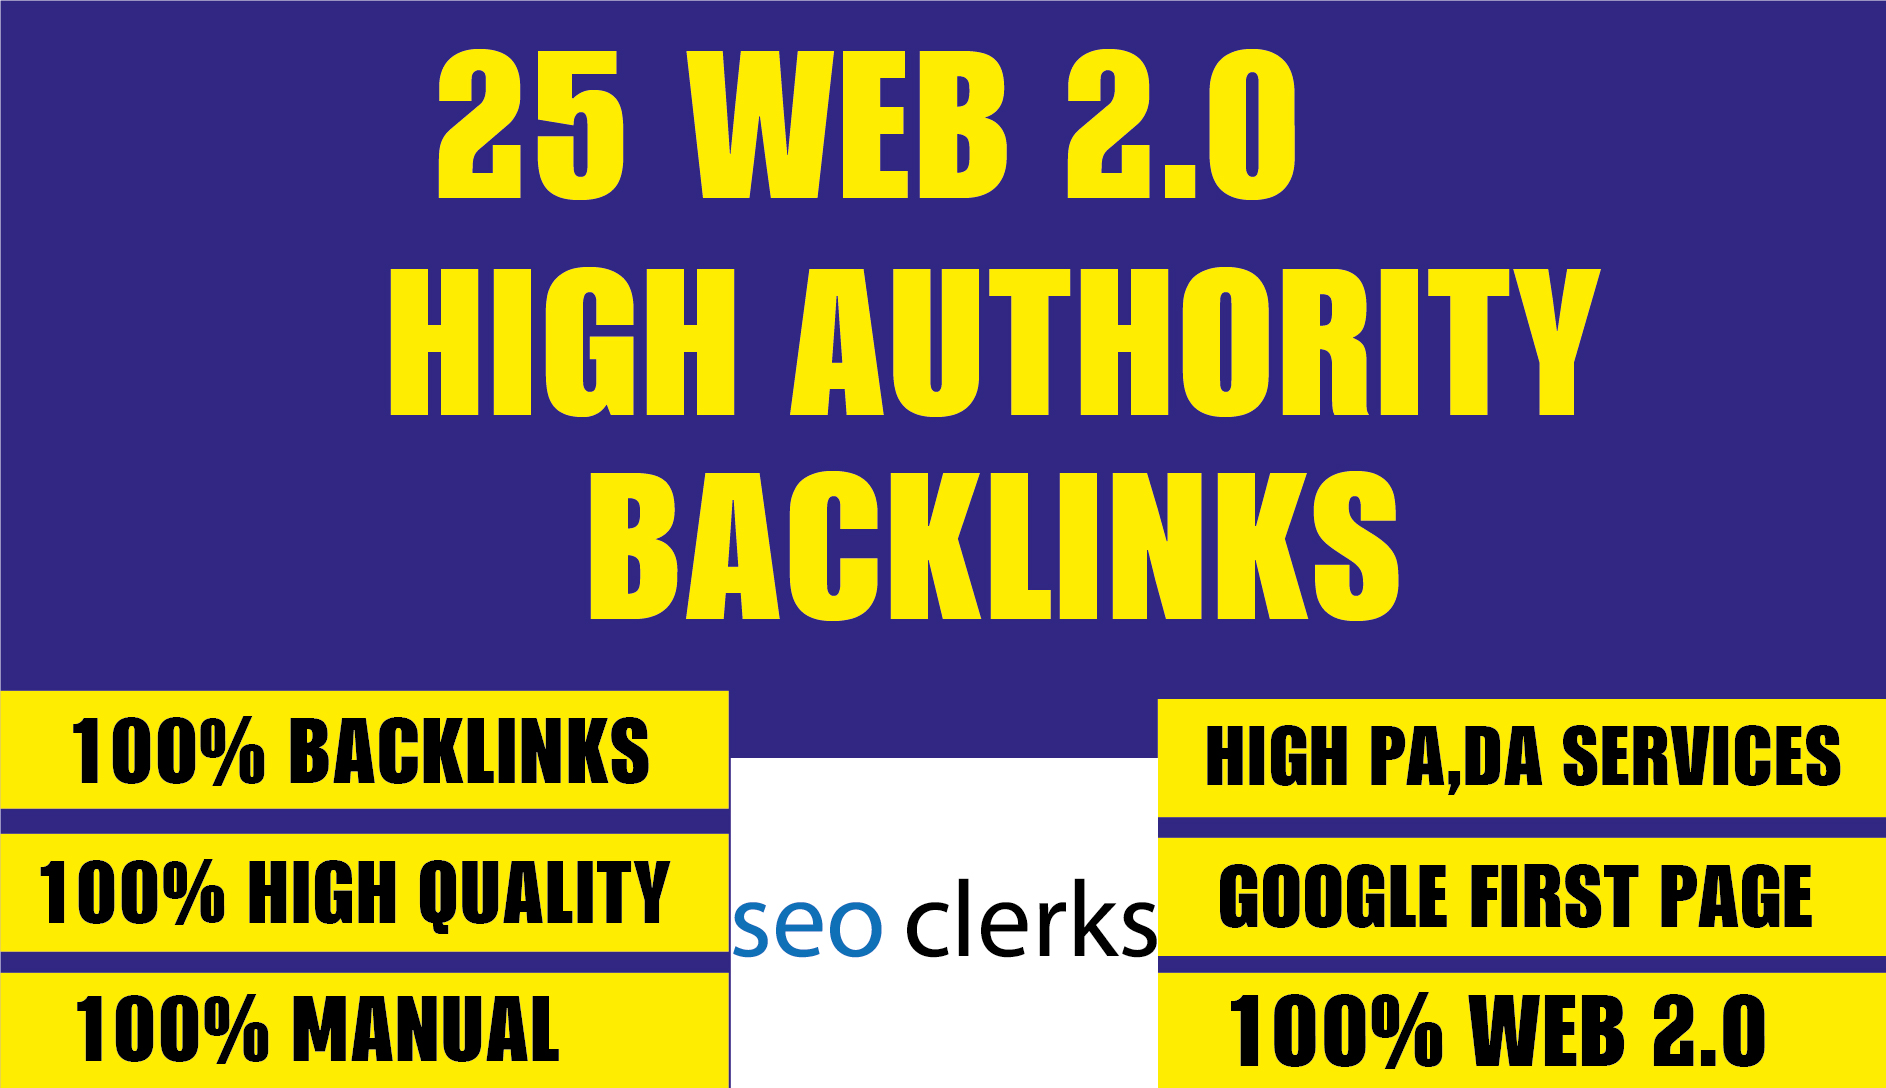 25 web 2 0 high authority backlinks